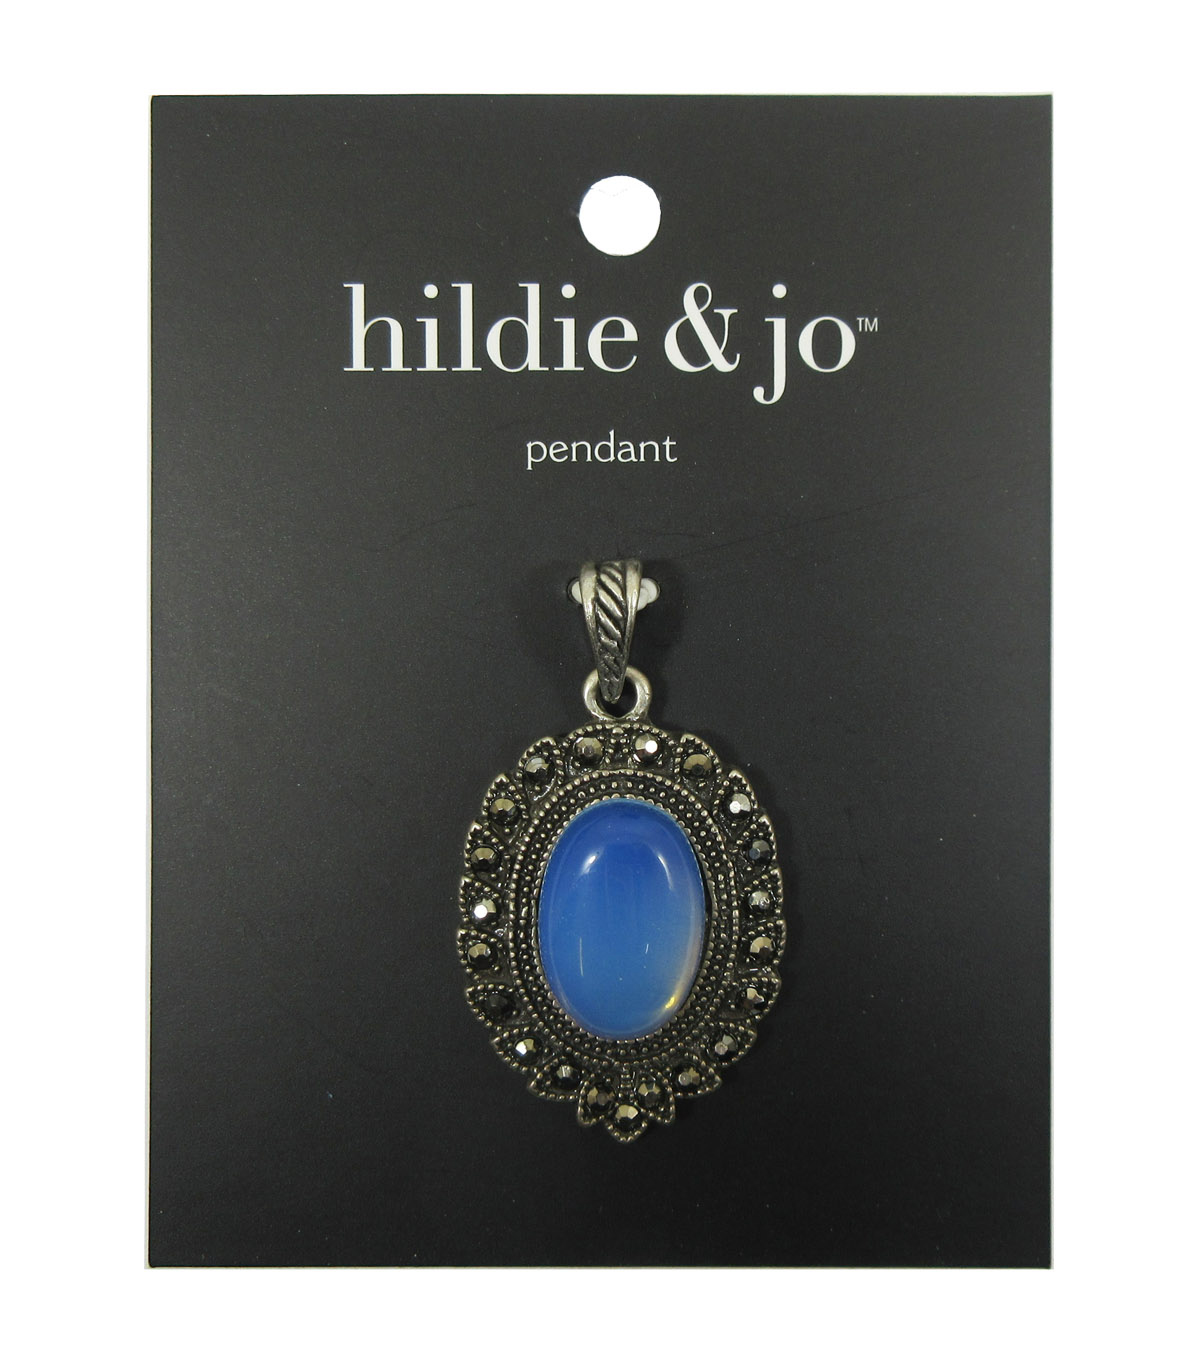 hildie & jo™ Ornamental Oval Metal Pendant